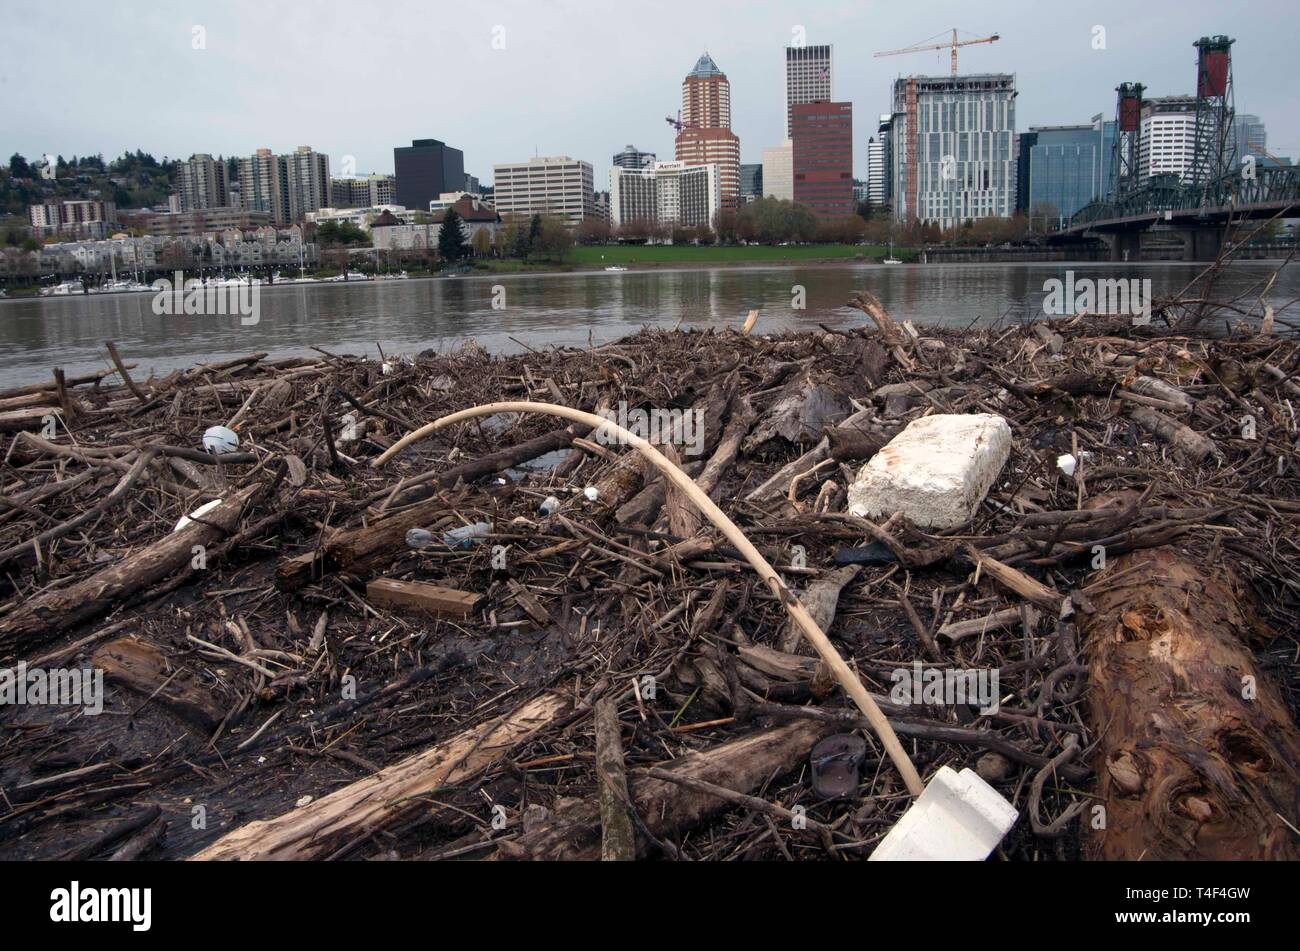 The Willamette River flows through the center of Portland, OR. It can be contaminated with trash, such as plastic bottles. - Stock Image